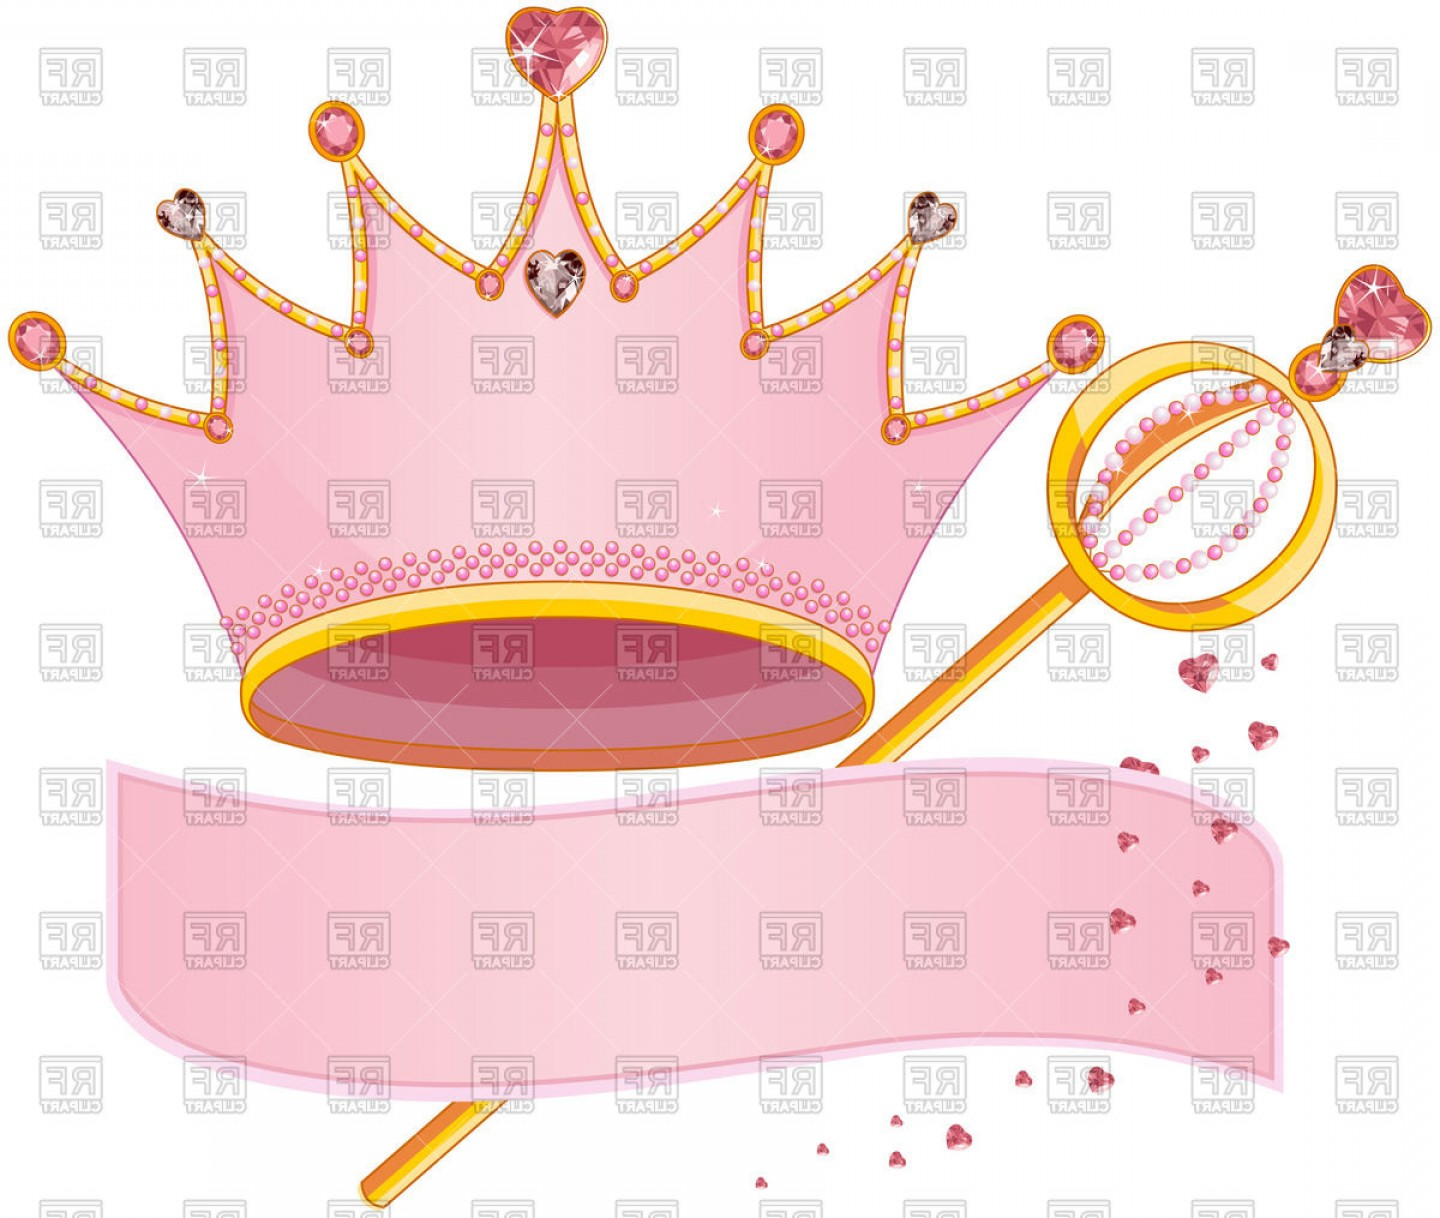 Medical Scepter Vector: Royal Regalia Crown Scepter And Pink Banner Vector Clipart